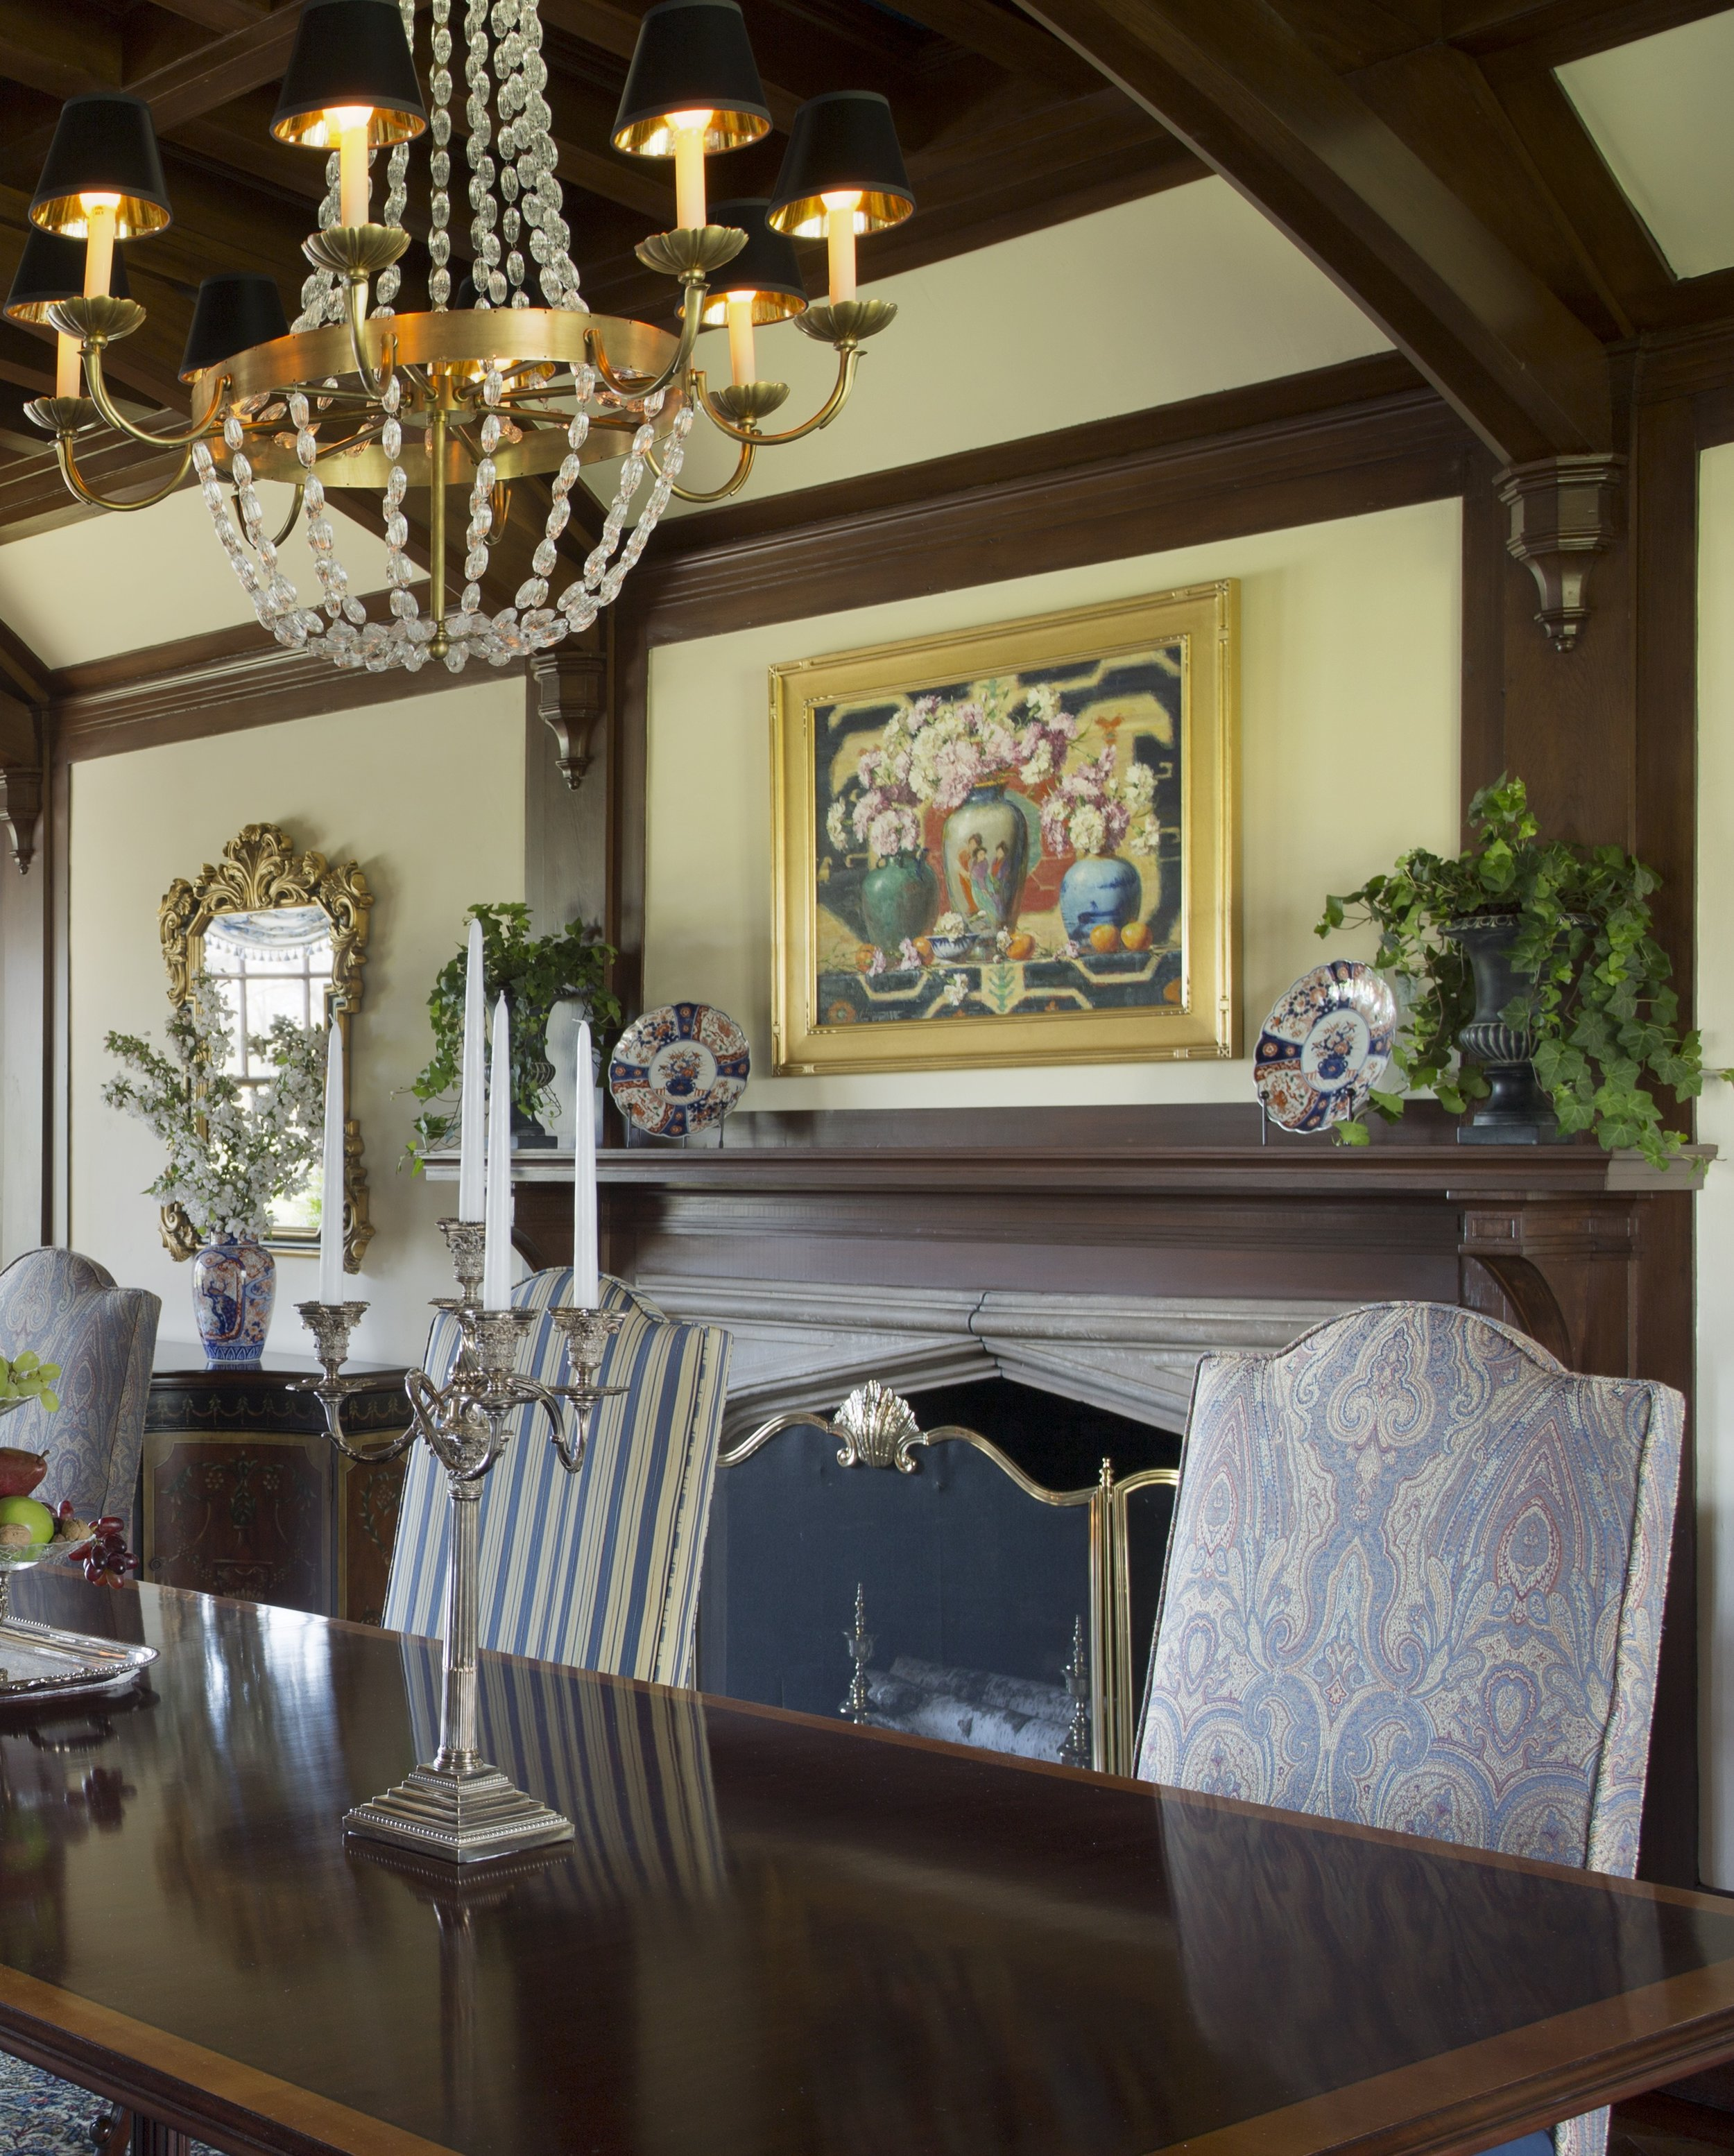 This mantel was designed to match the existing millwork in the room and added to the existing stone fireplace surround. The new mantel shelf is topped with a pair of urns full of ivy, and a pair of antique Imari plates flanking a still life oil painting. The screen and andirons were found at the Adams Fireplace Shop mentioned above.